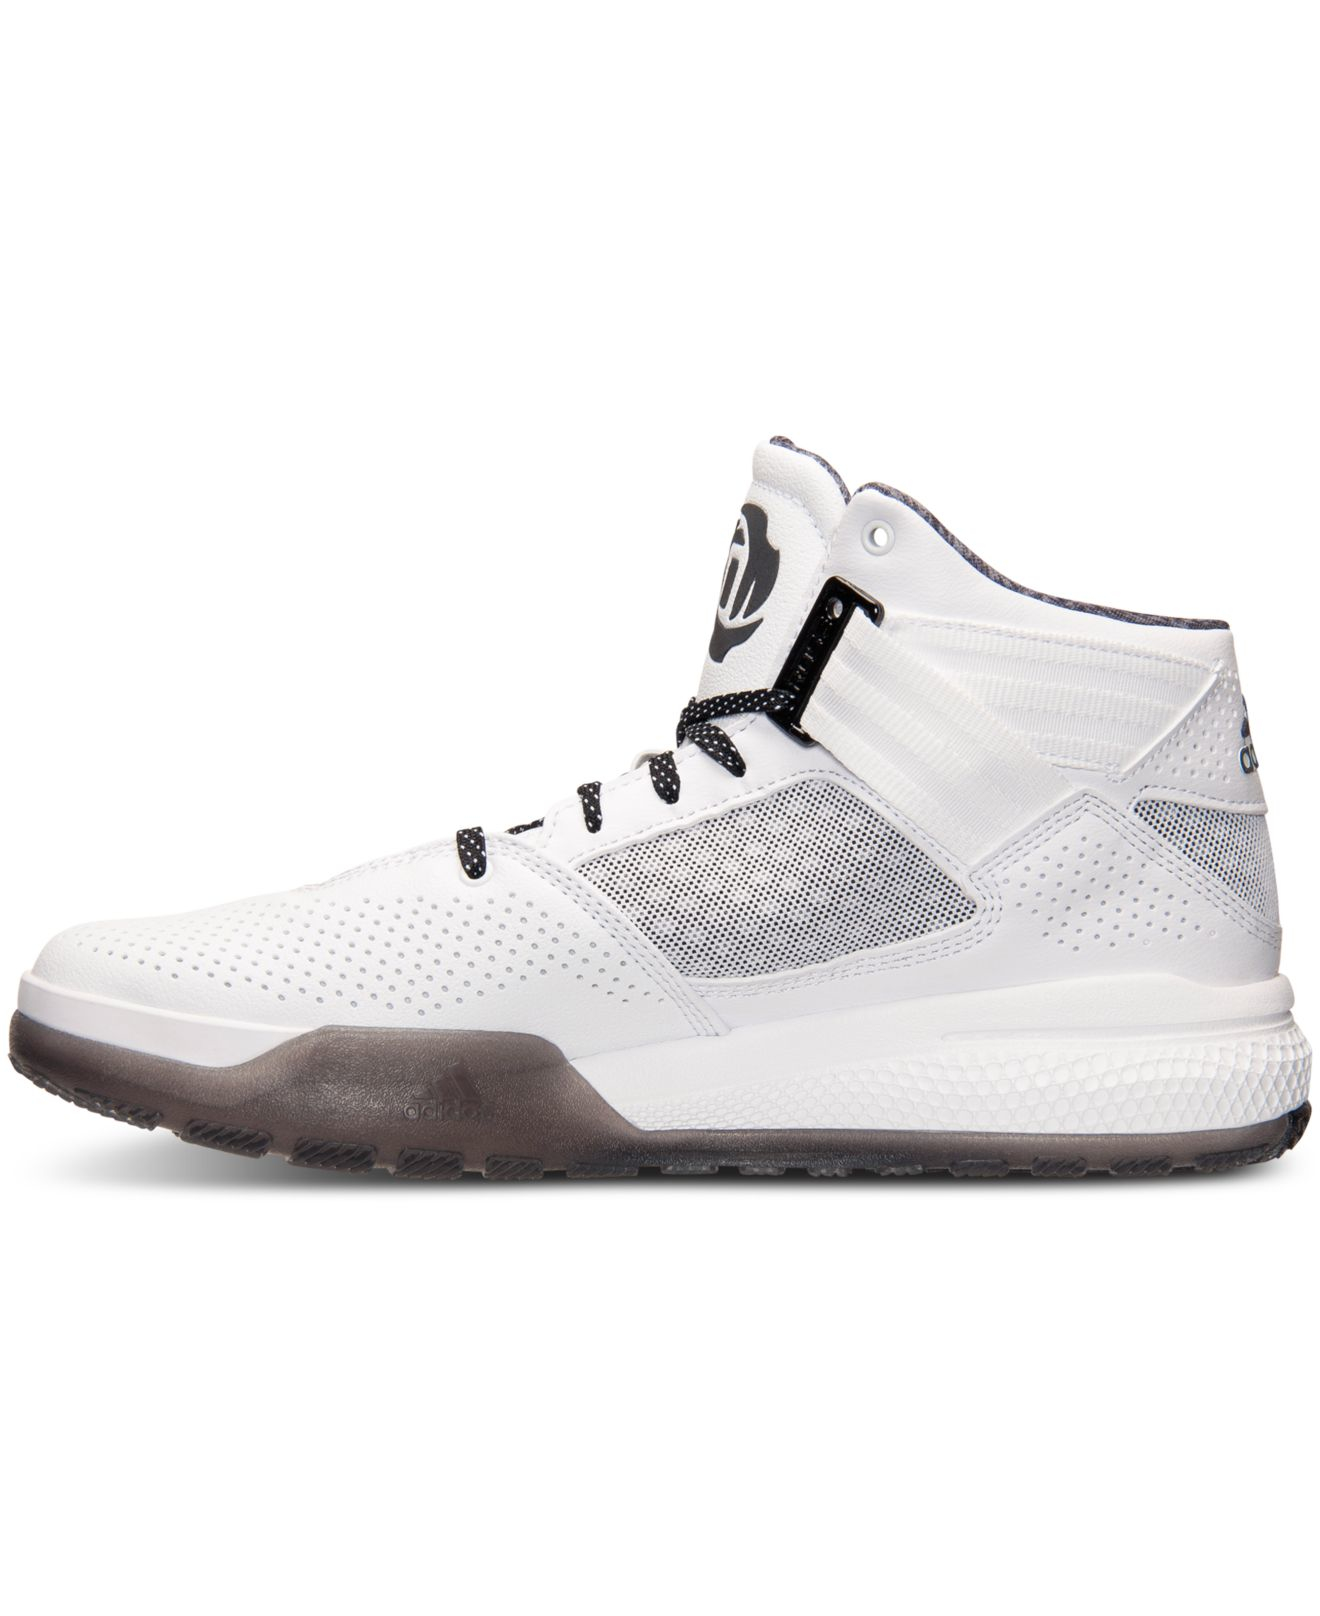 cf84d86314d8 Lyst - adidas Men s D Rose 773 Iv Basketball Sneakers From Finish Line in  White for Men